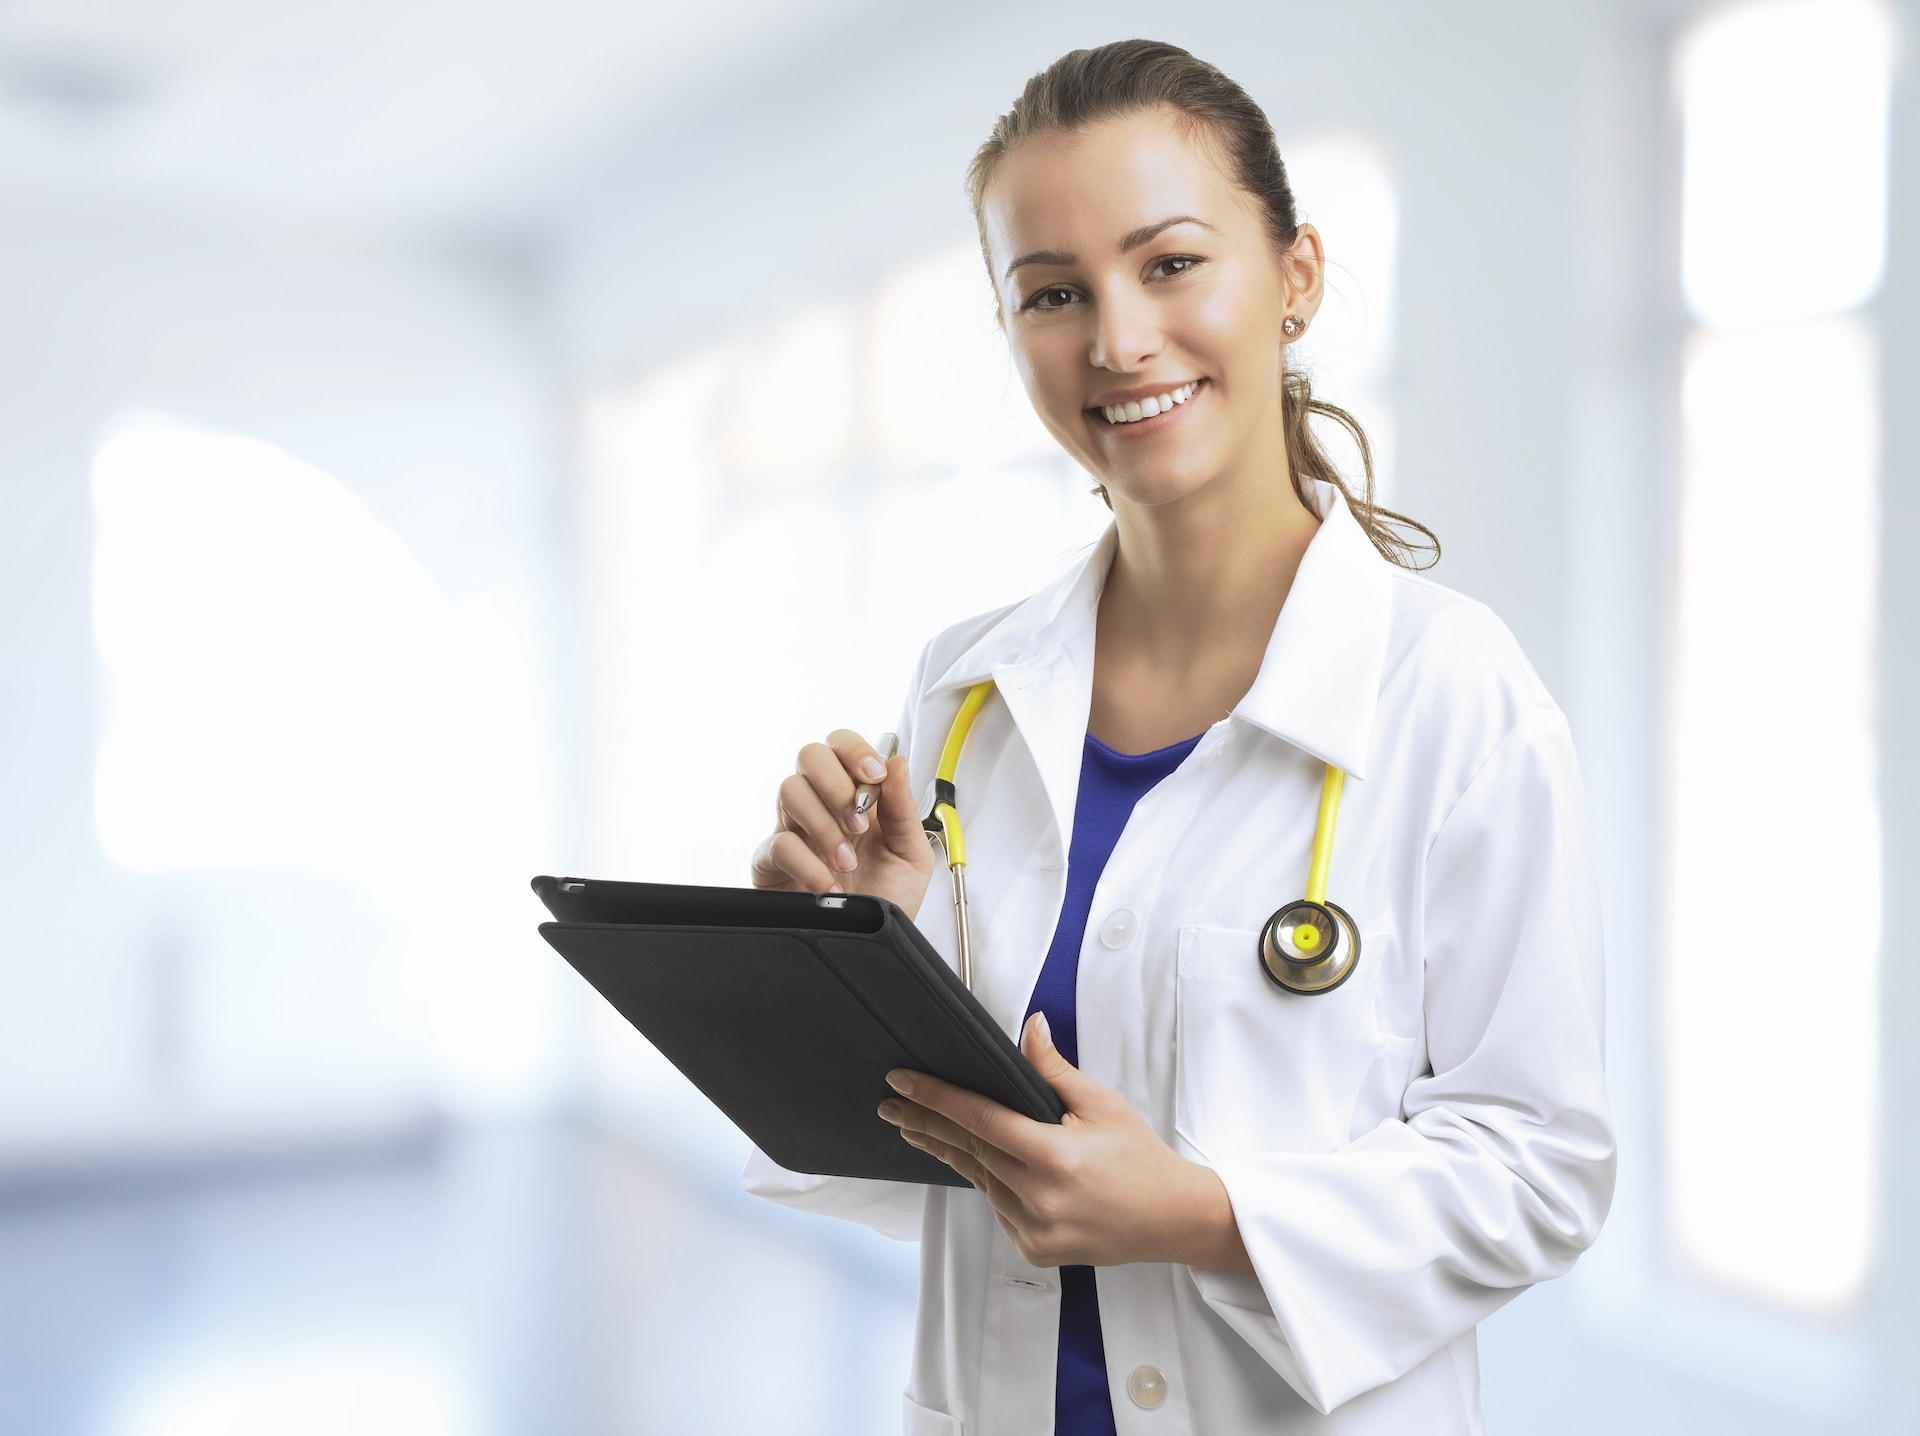 Female Doctor Standing At The Hospital With A Digital Tablet